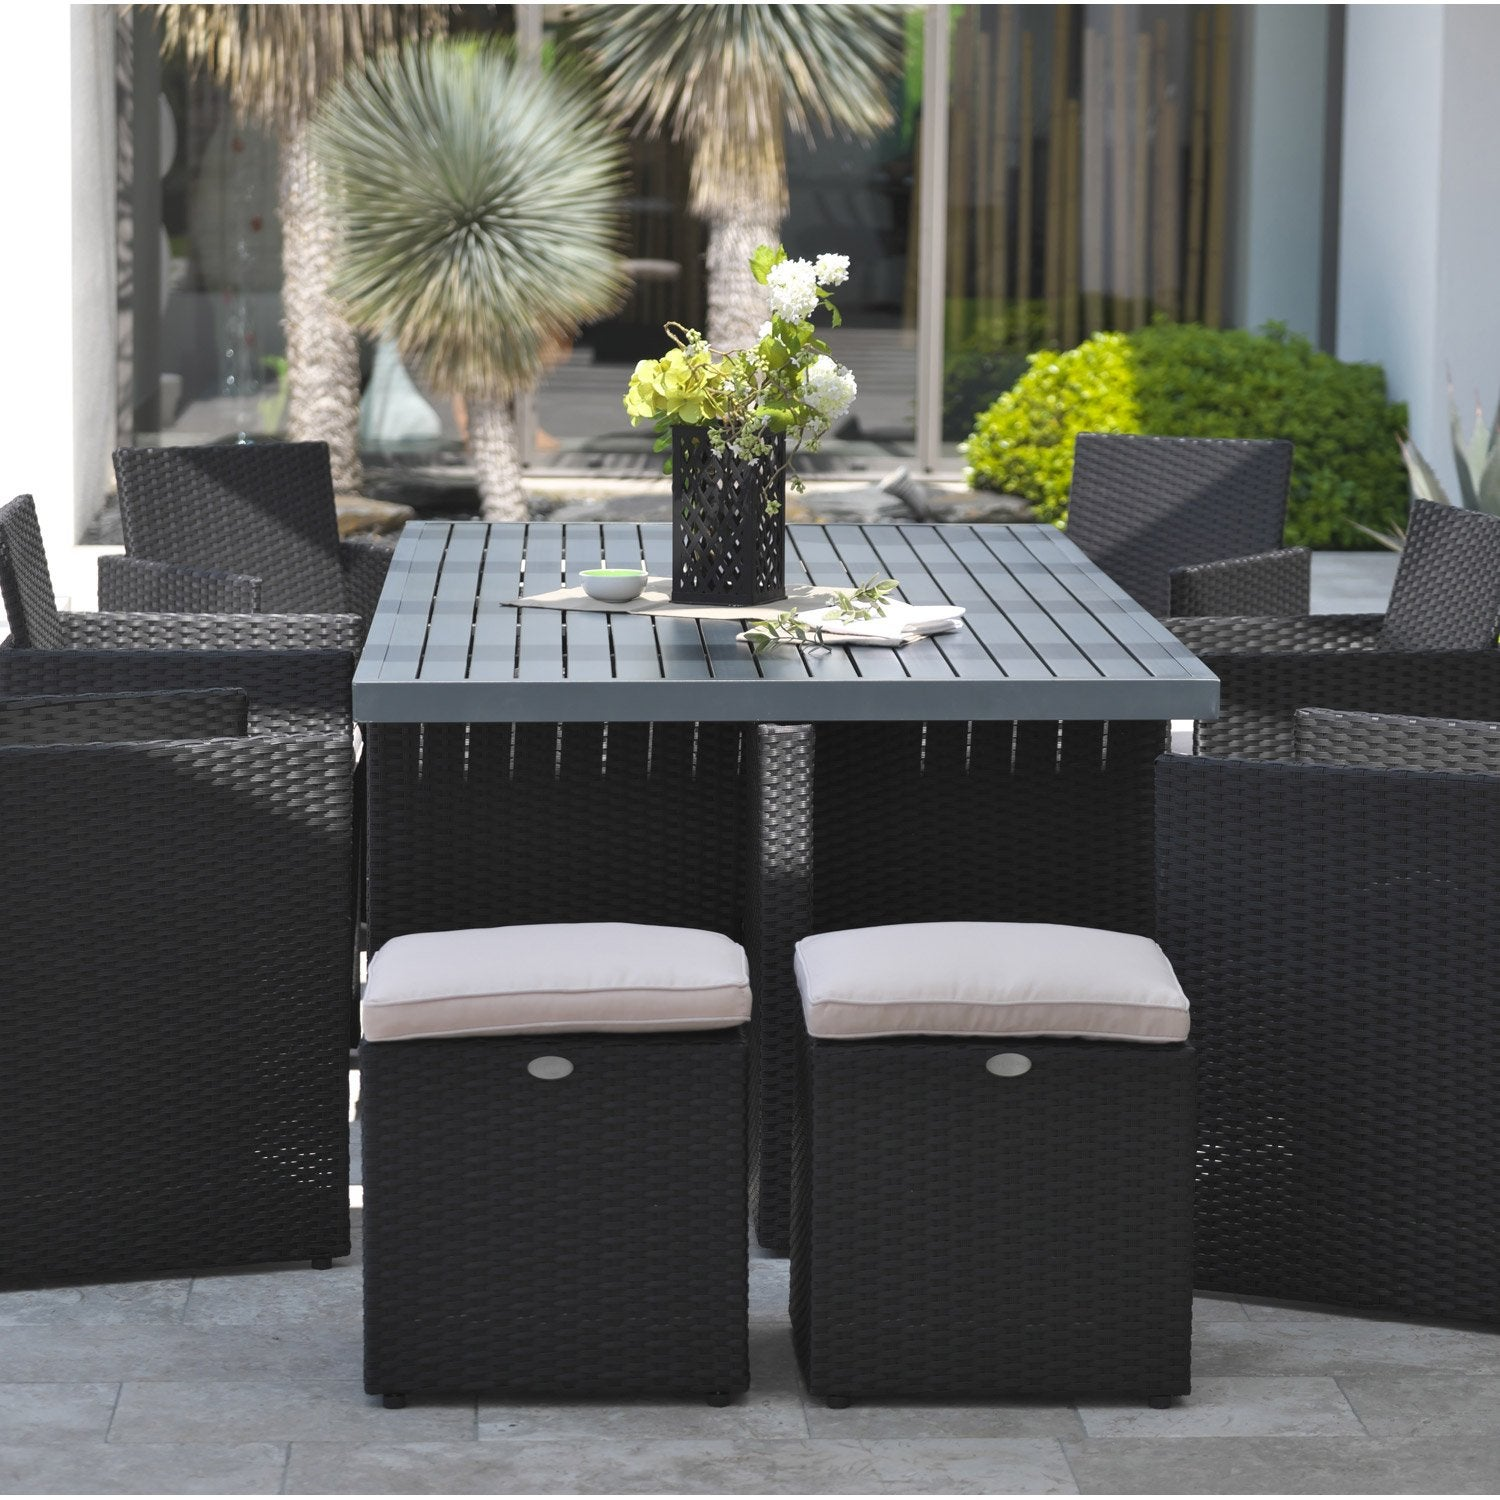 Salon de jardin encastrable r sine tress e noir 10 for Salon table de jardin